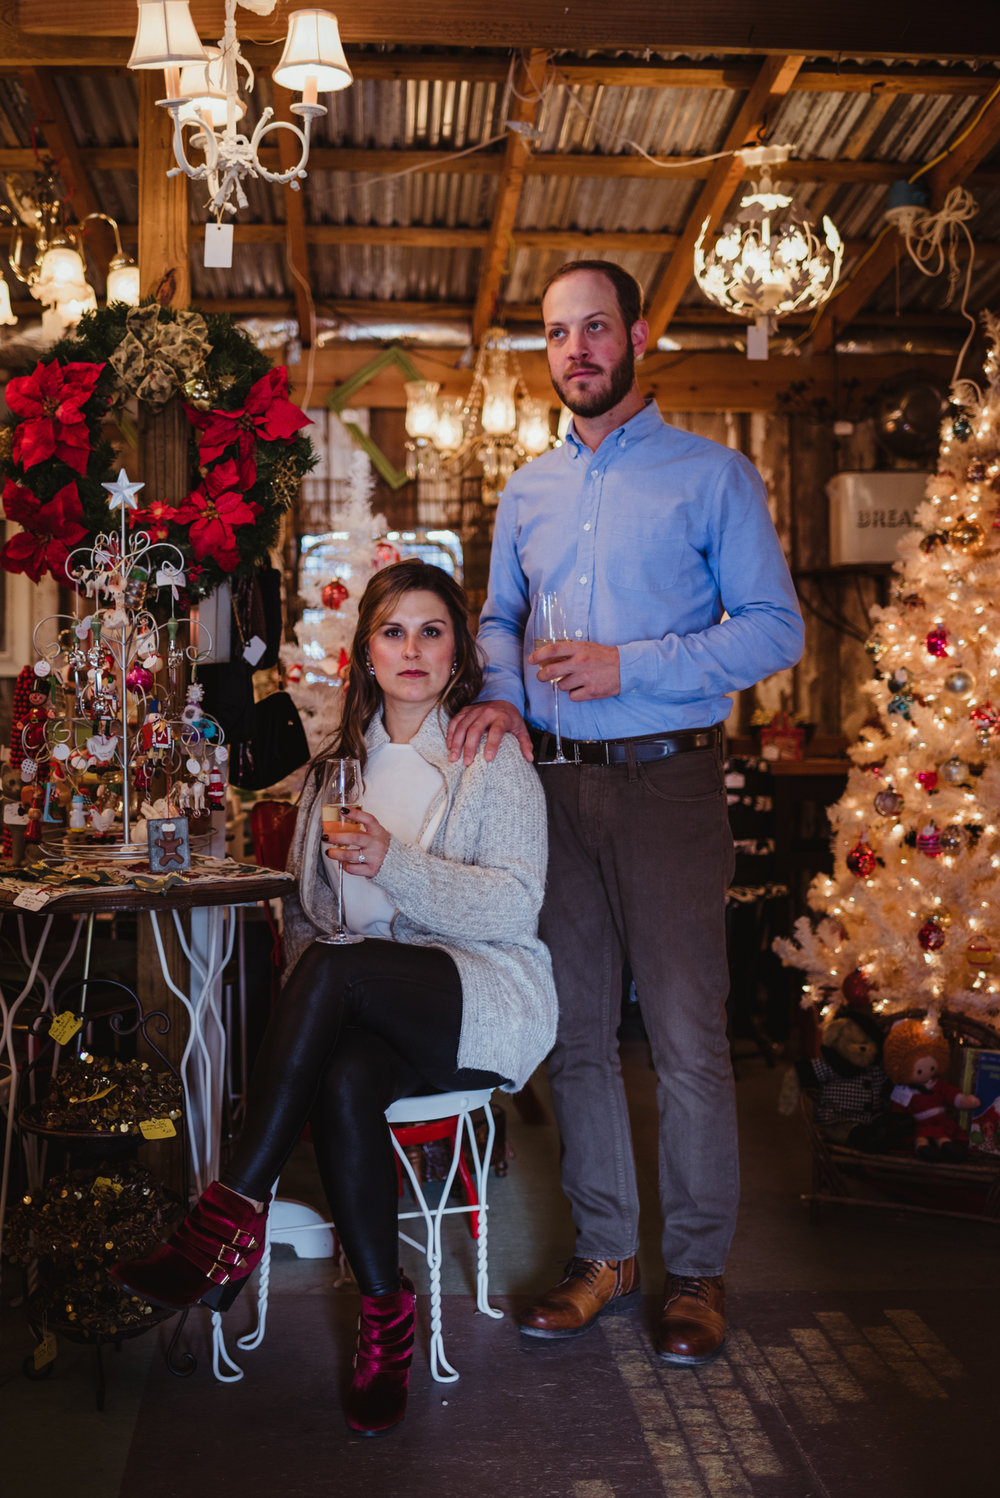 a-perfect-pose-among-the-christmas-decorations-at-their-engagement-session.jpg